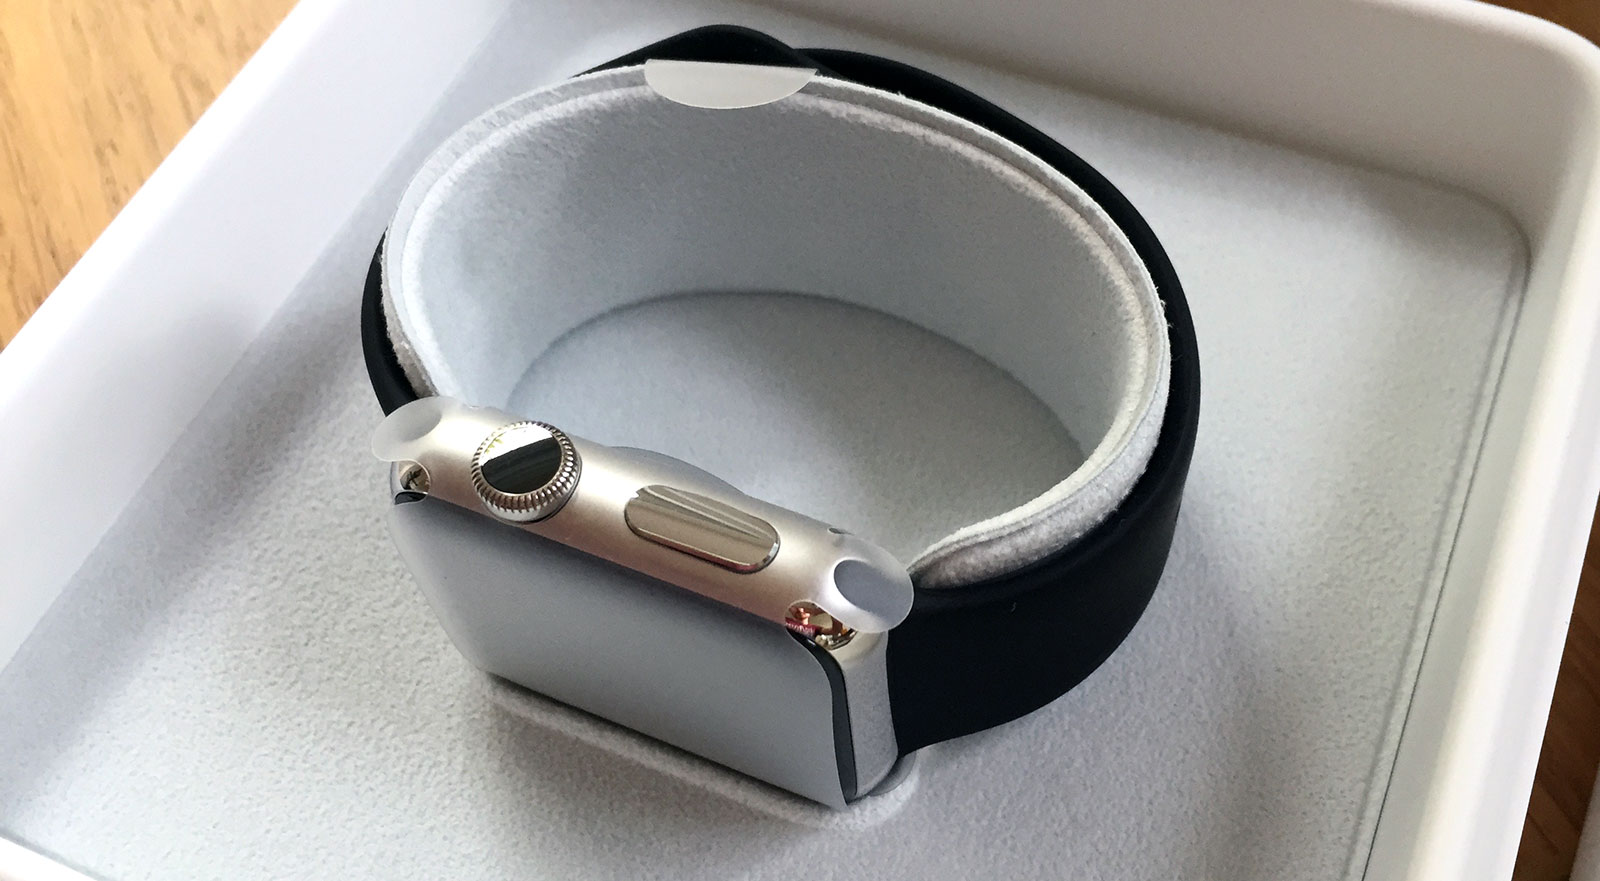 Apple Watch in box